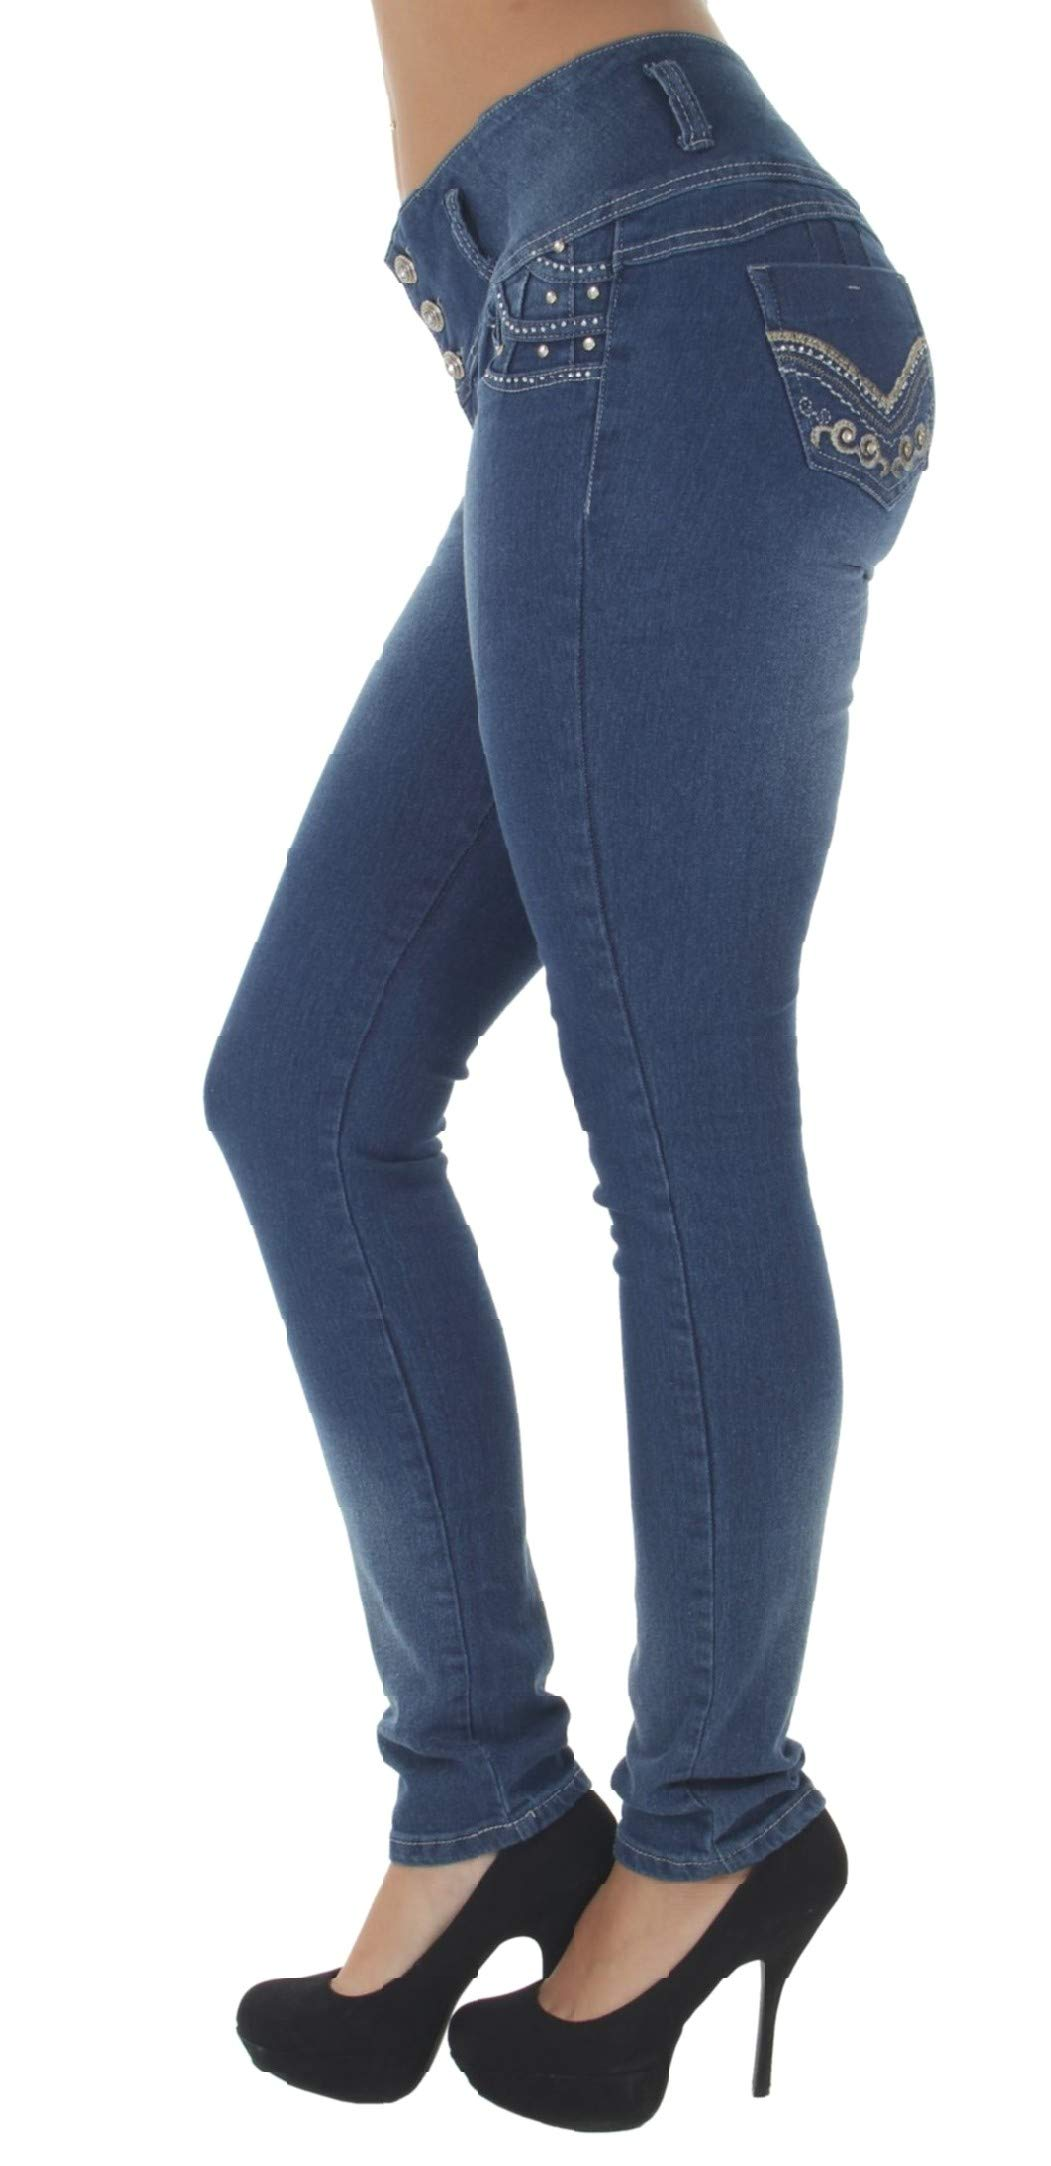 Fashion2Love Style G389P - Plus Size, Colombian Design, High Waist, Butt Lift, Skinny Jeans in M. Blue Size 24